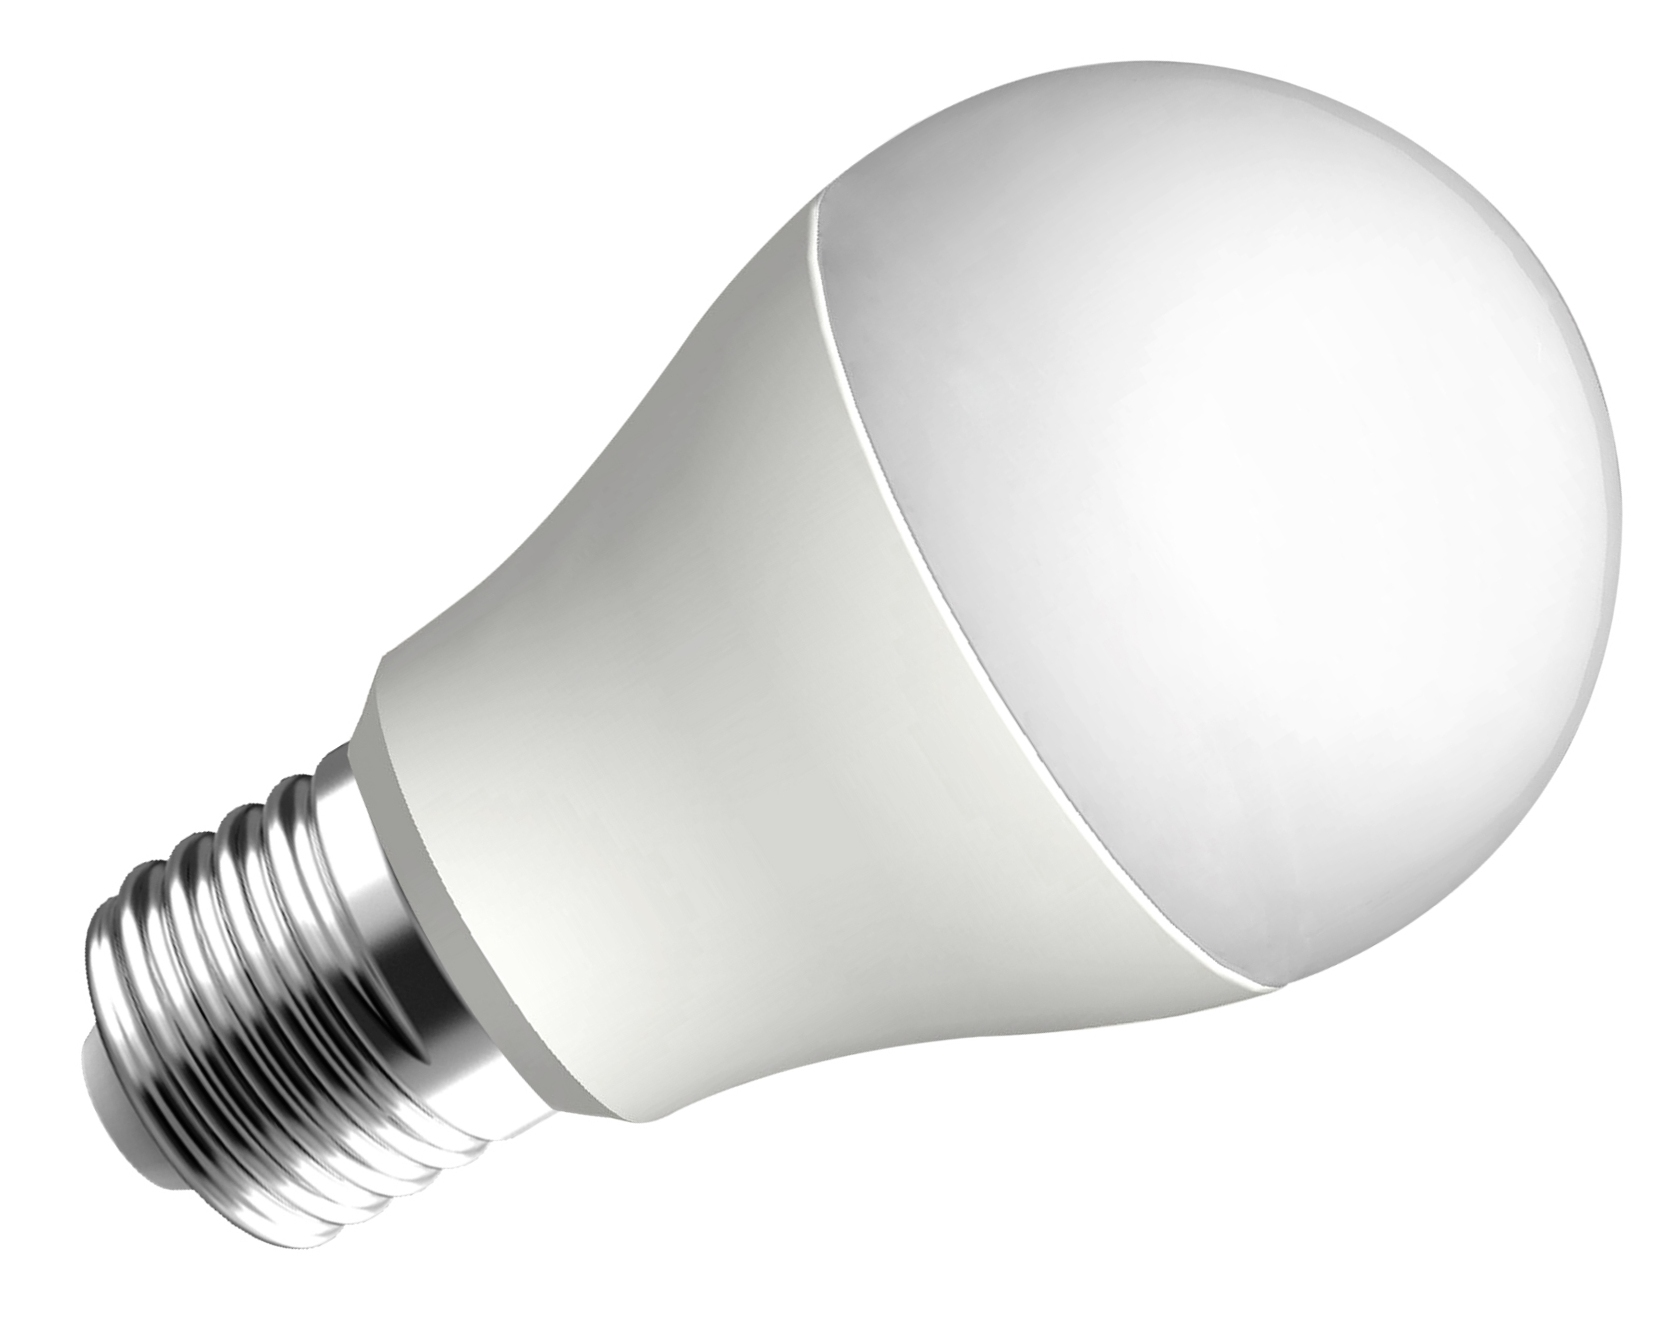 File Żarówka Led E27 10w Bulb Kingled Krakow Jpg Wikimedia Commons